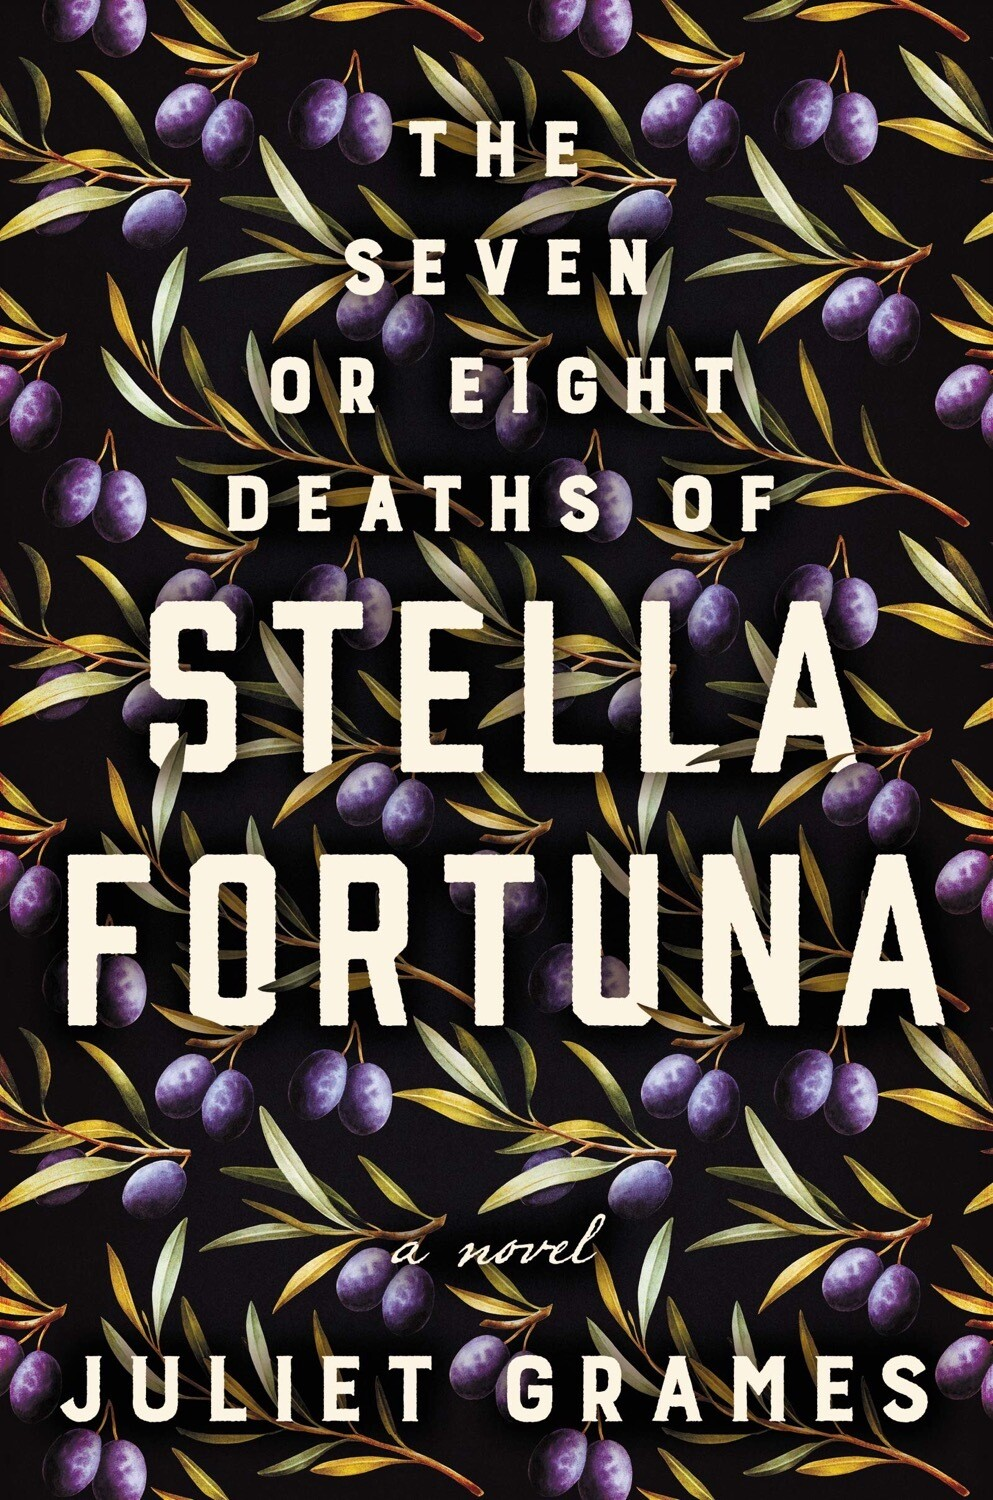 The Seven or Eight Deaths of Stella Fortuna NEW w/ SIGNED BOOKPLATE